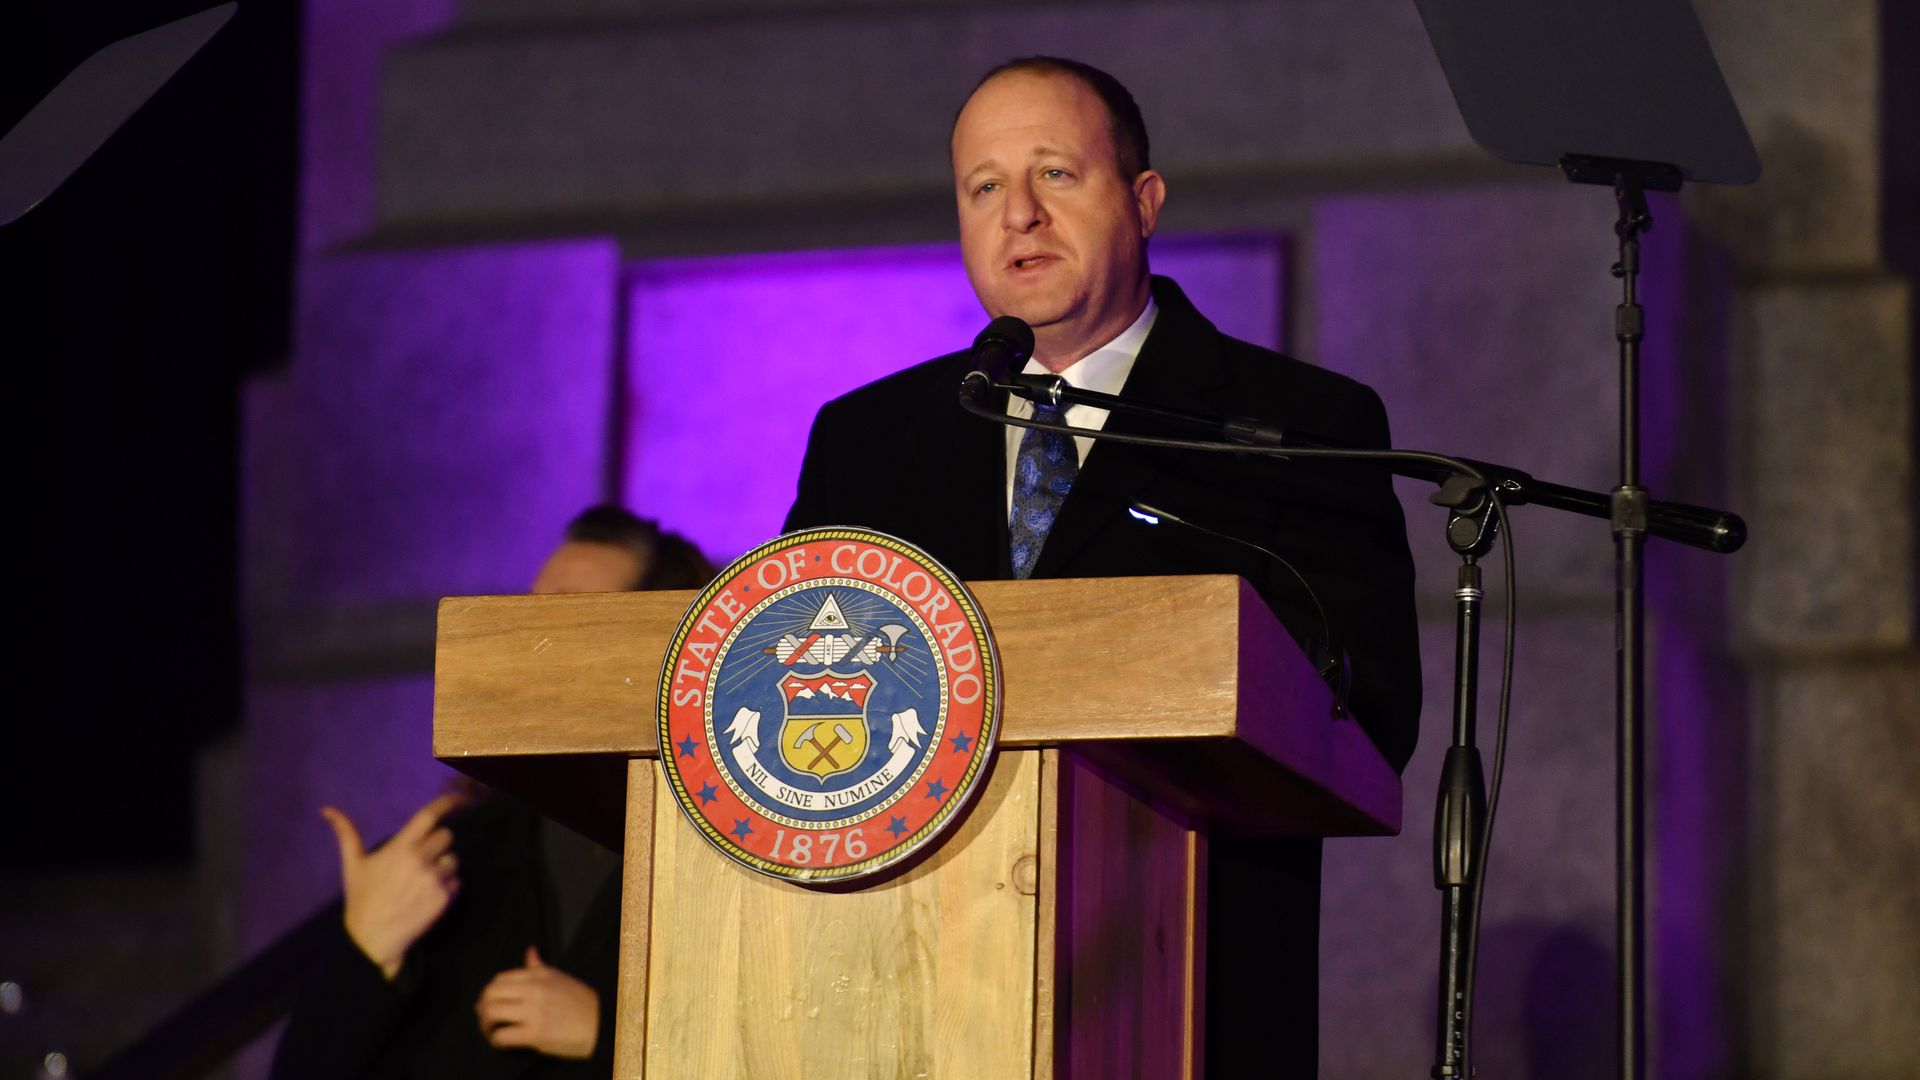 Gov. Jared Polis is in west step of State Capital building for Colorado for Statewide Evening of Remembrance in Denver, Colorado on Friday, March 5, 2021.